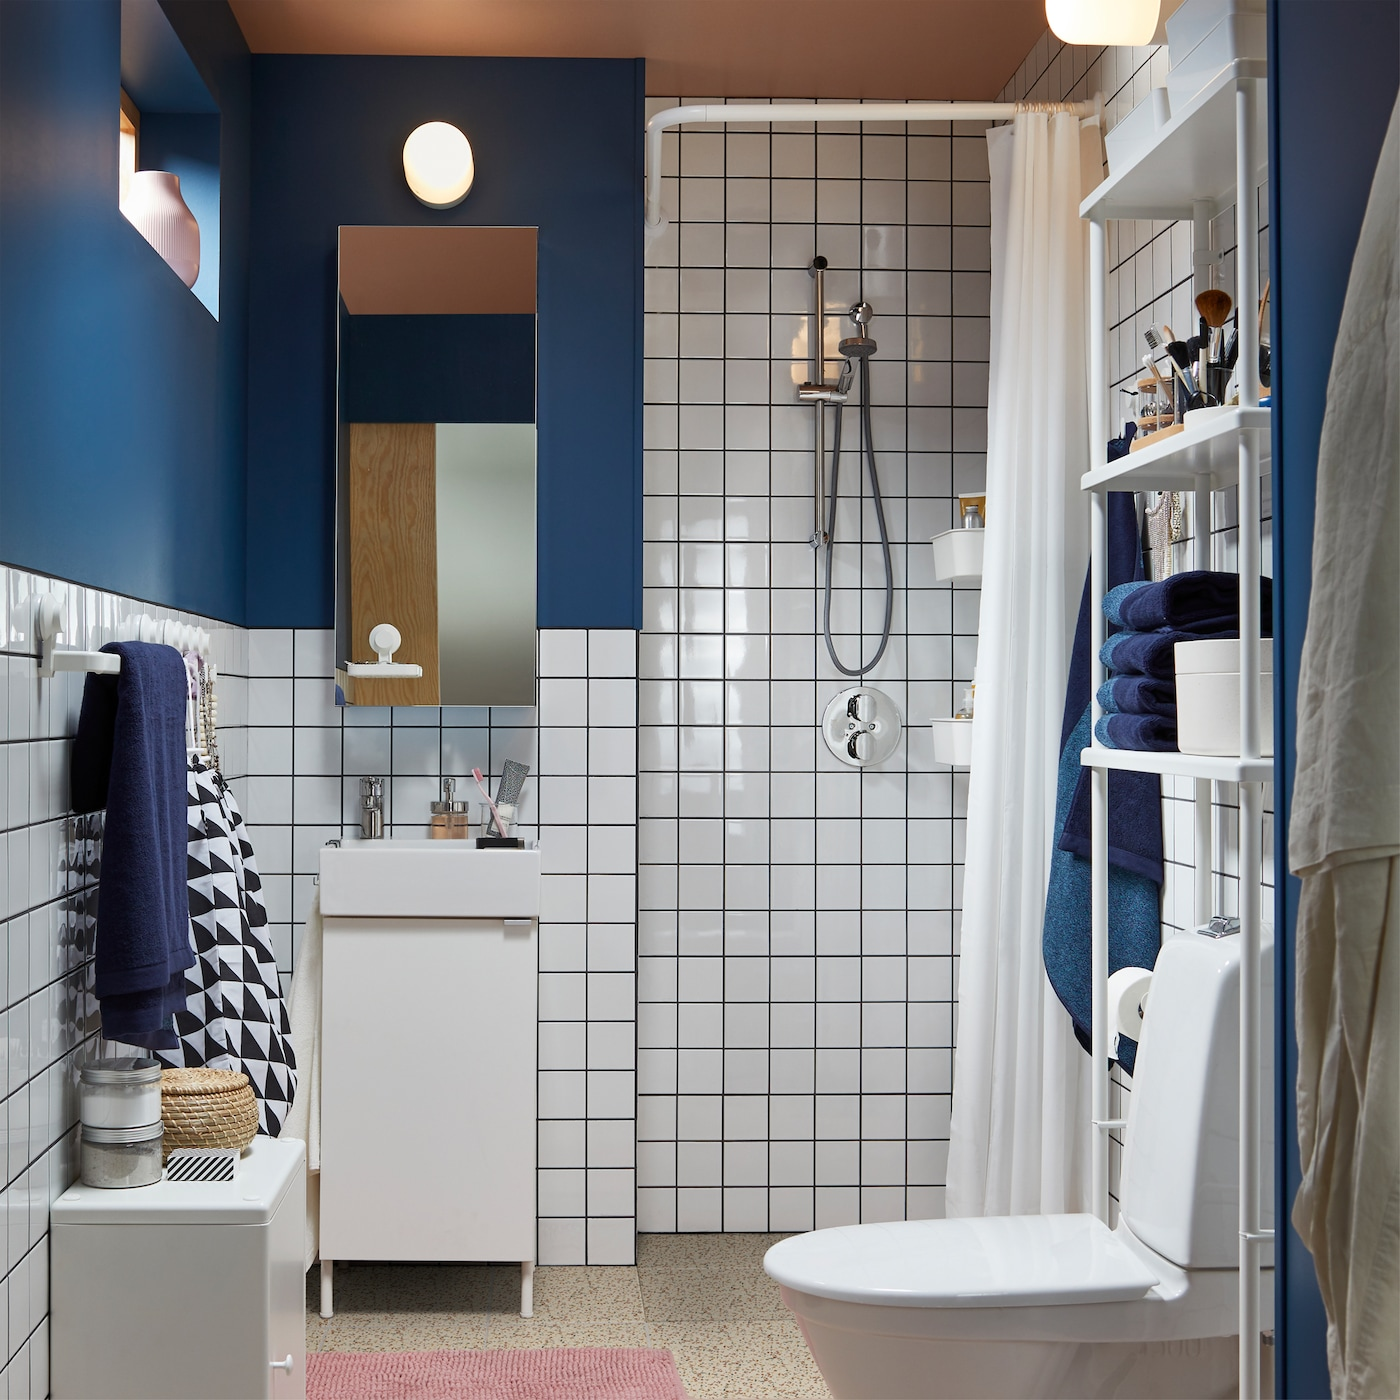 A high-end bathroom look at a low price - IKEA